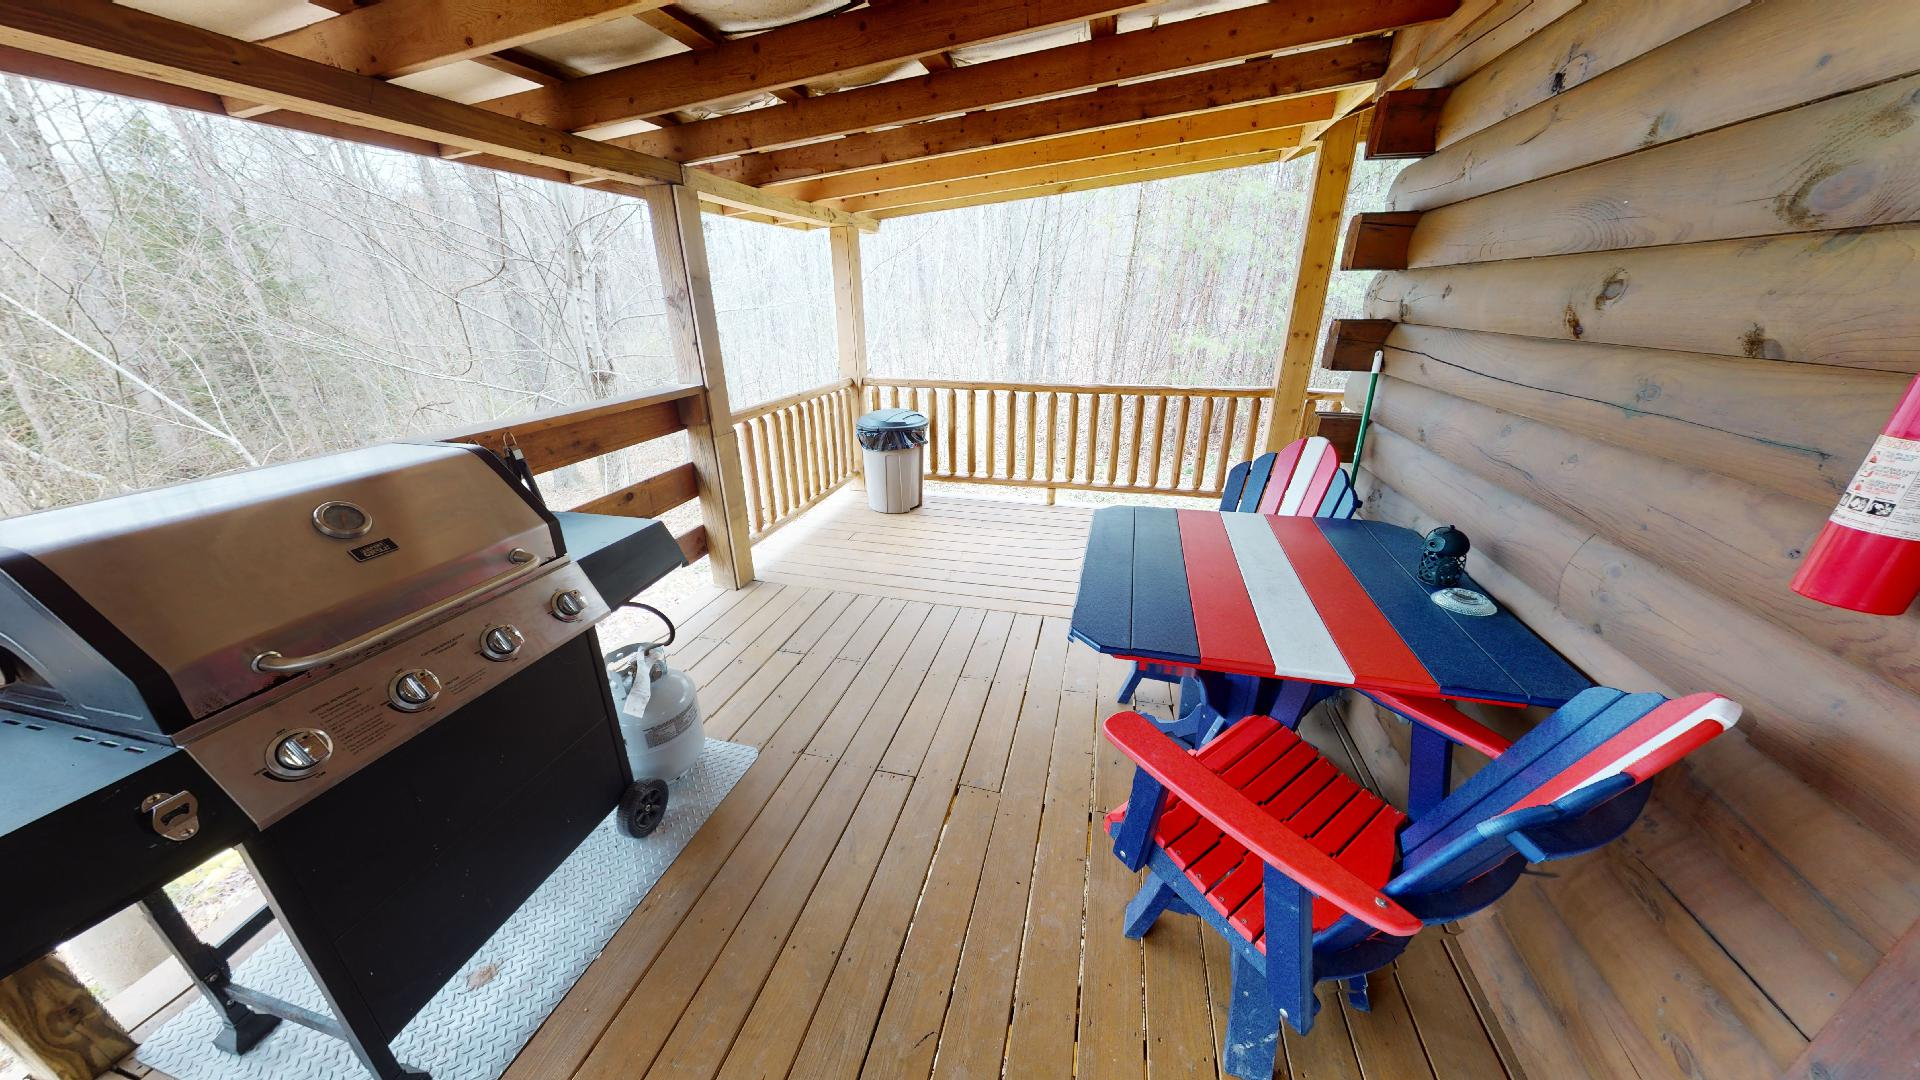 Silver Wolf Porch - Propane grill and outdoor seating.